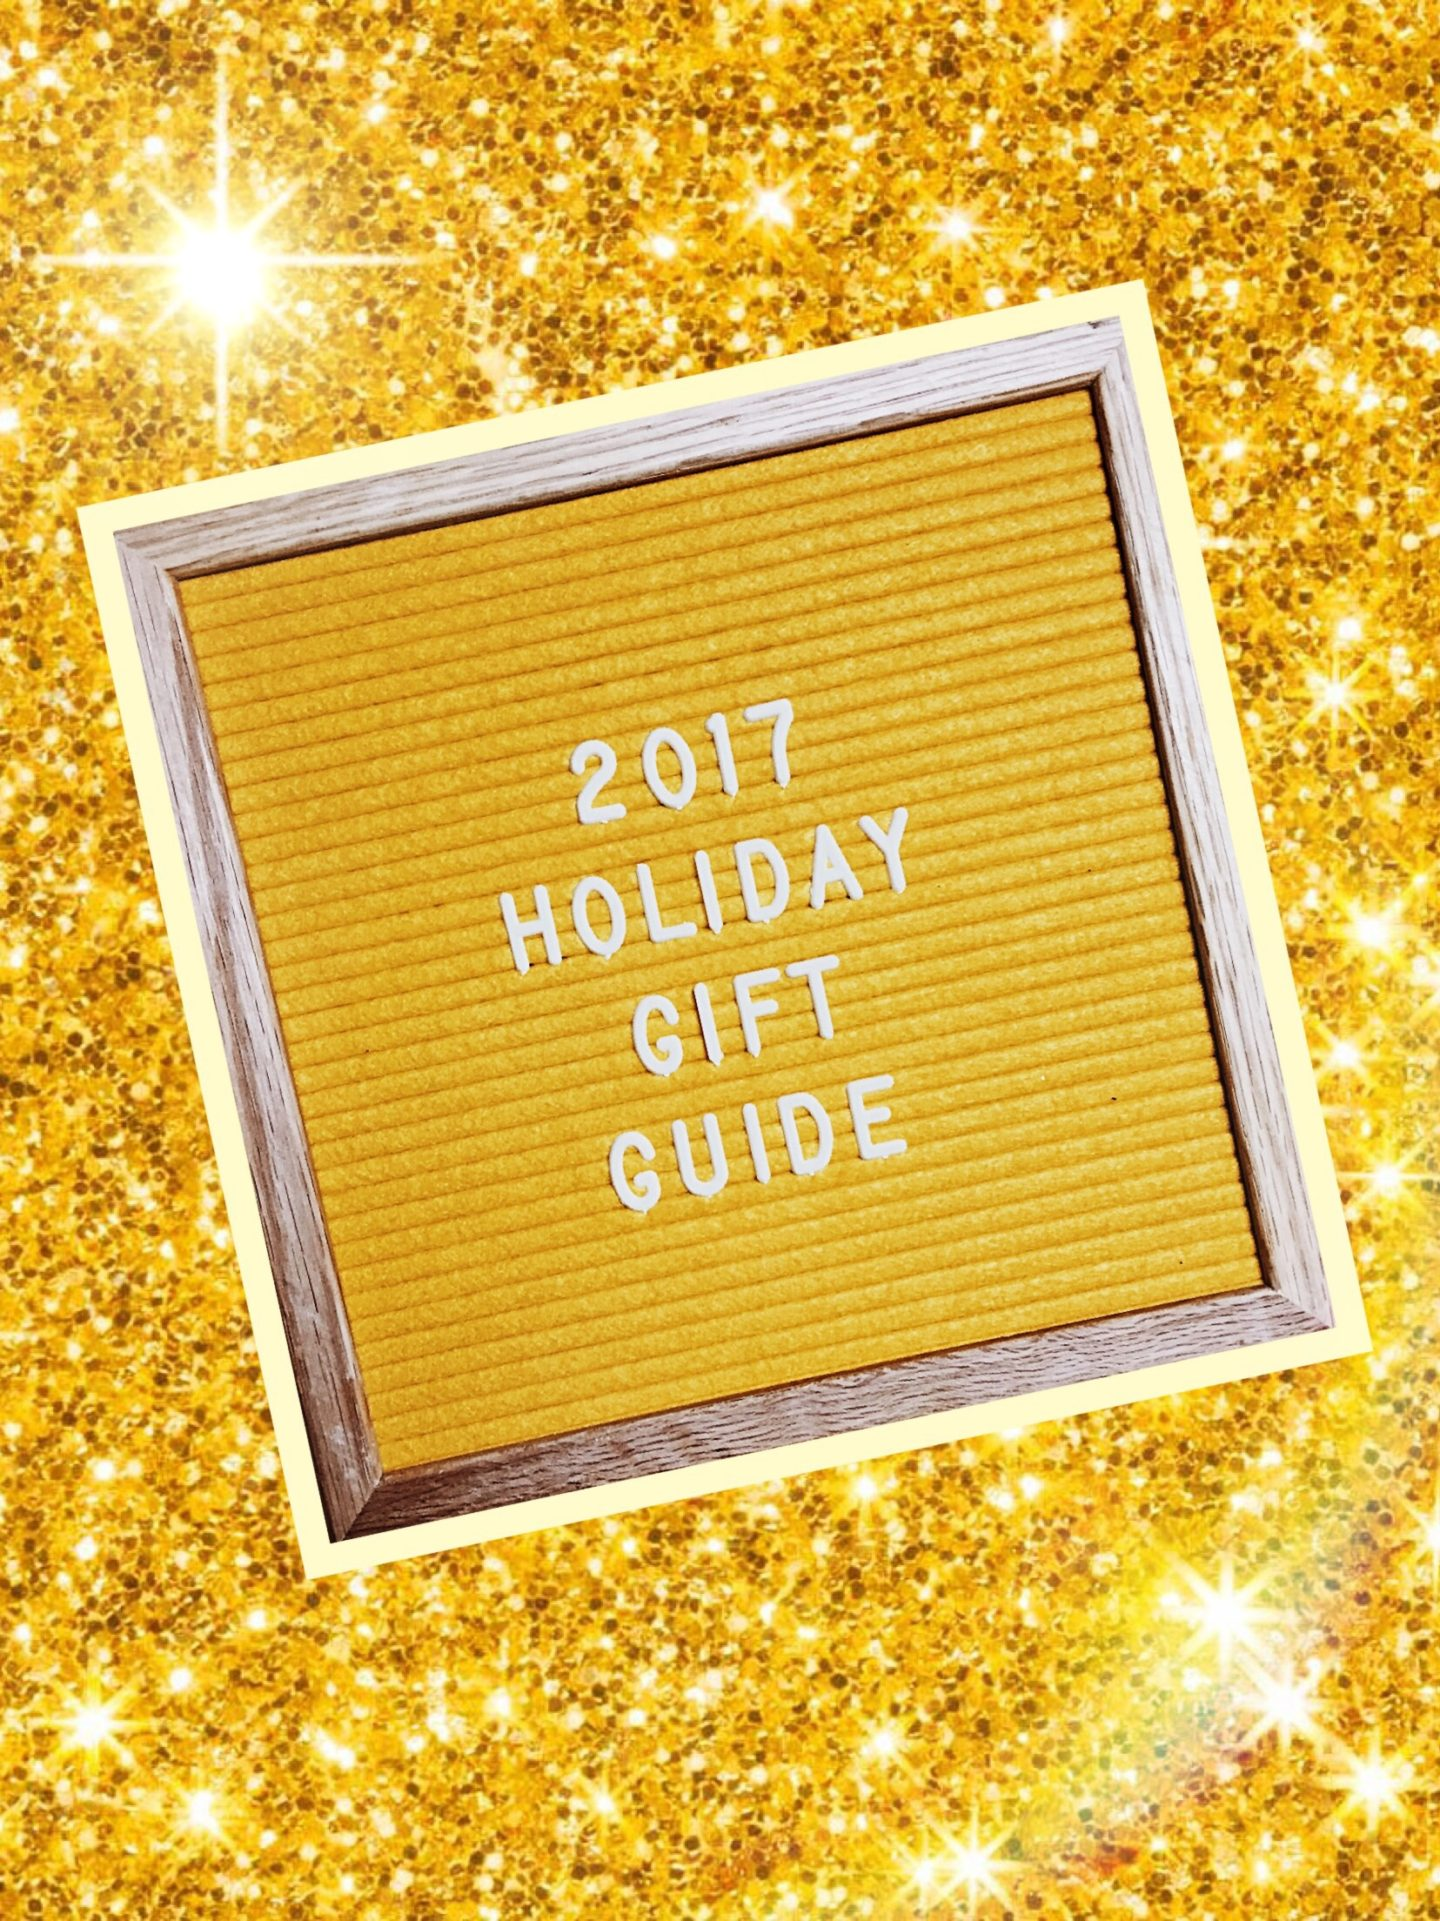 2017 HOLIDAY GIFT GUIDE.